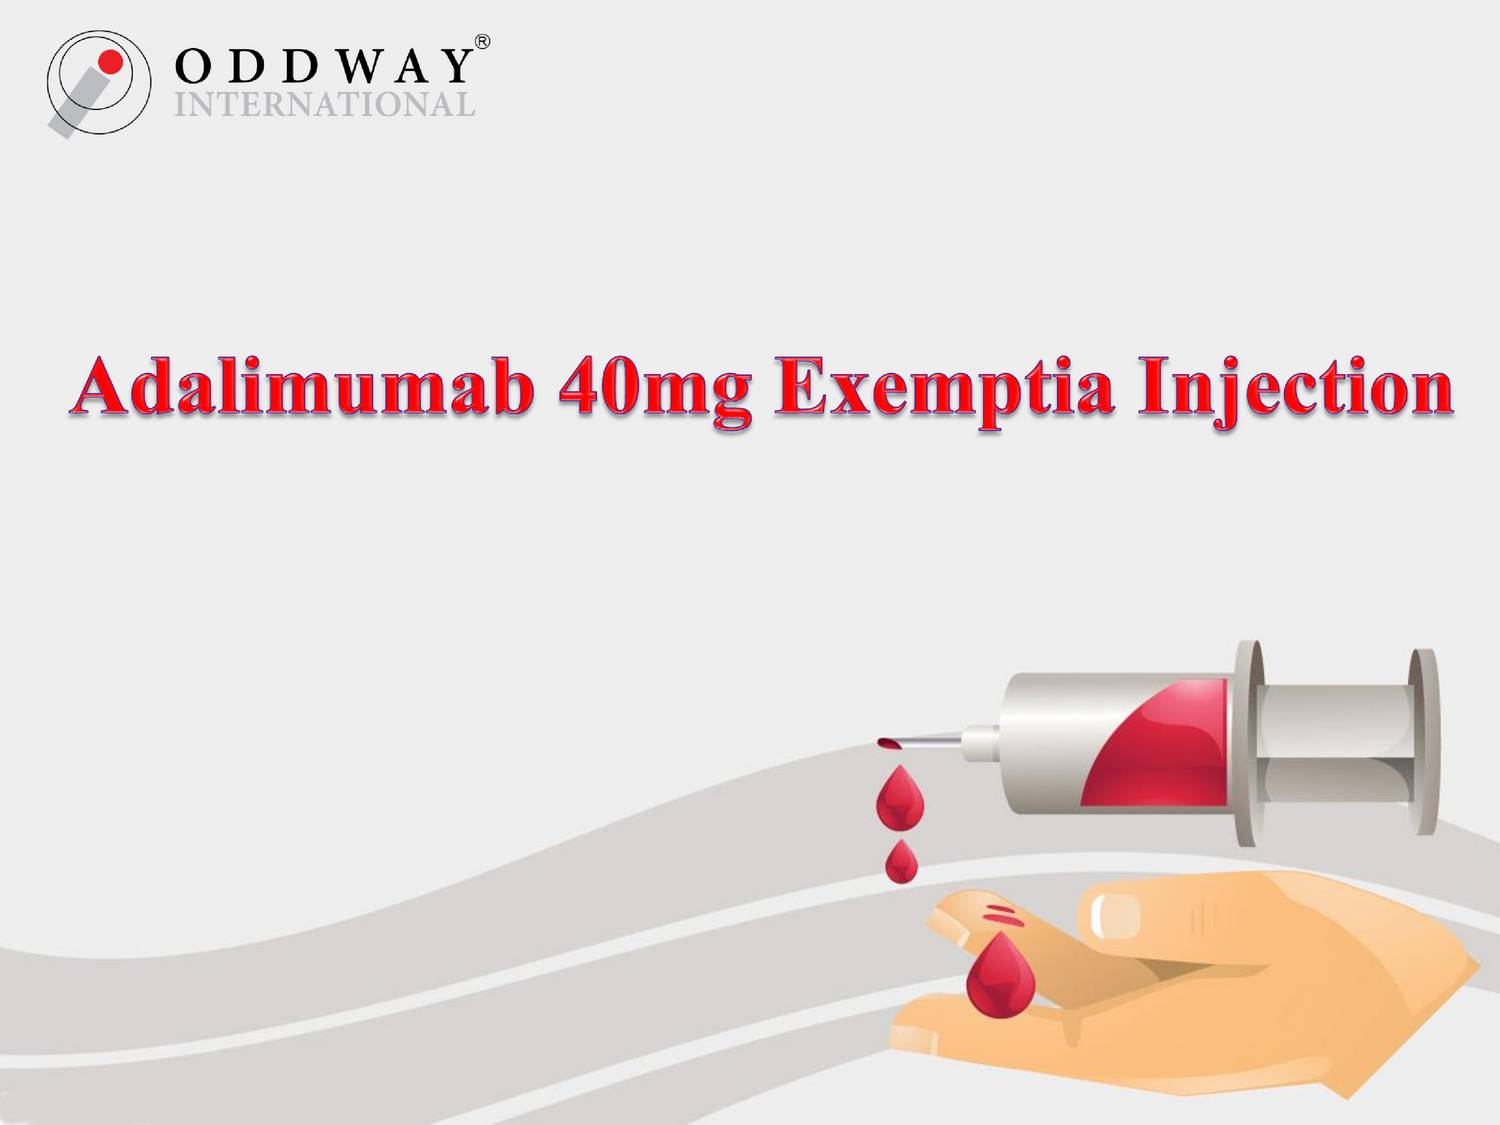 Exemptia 40mg Adalimumab Injection Ppt Docdroid